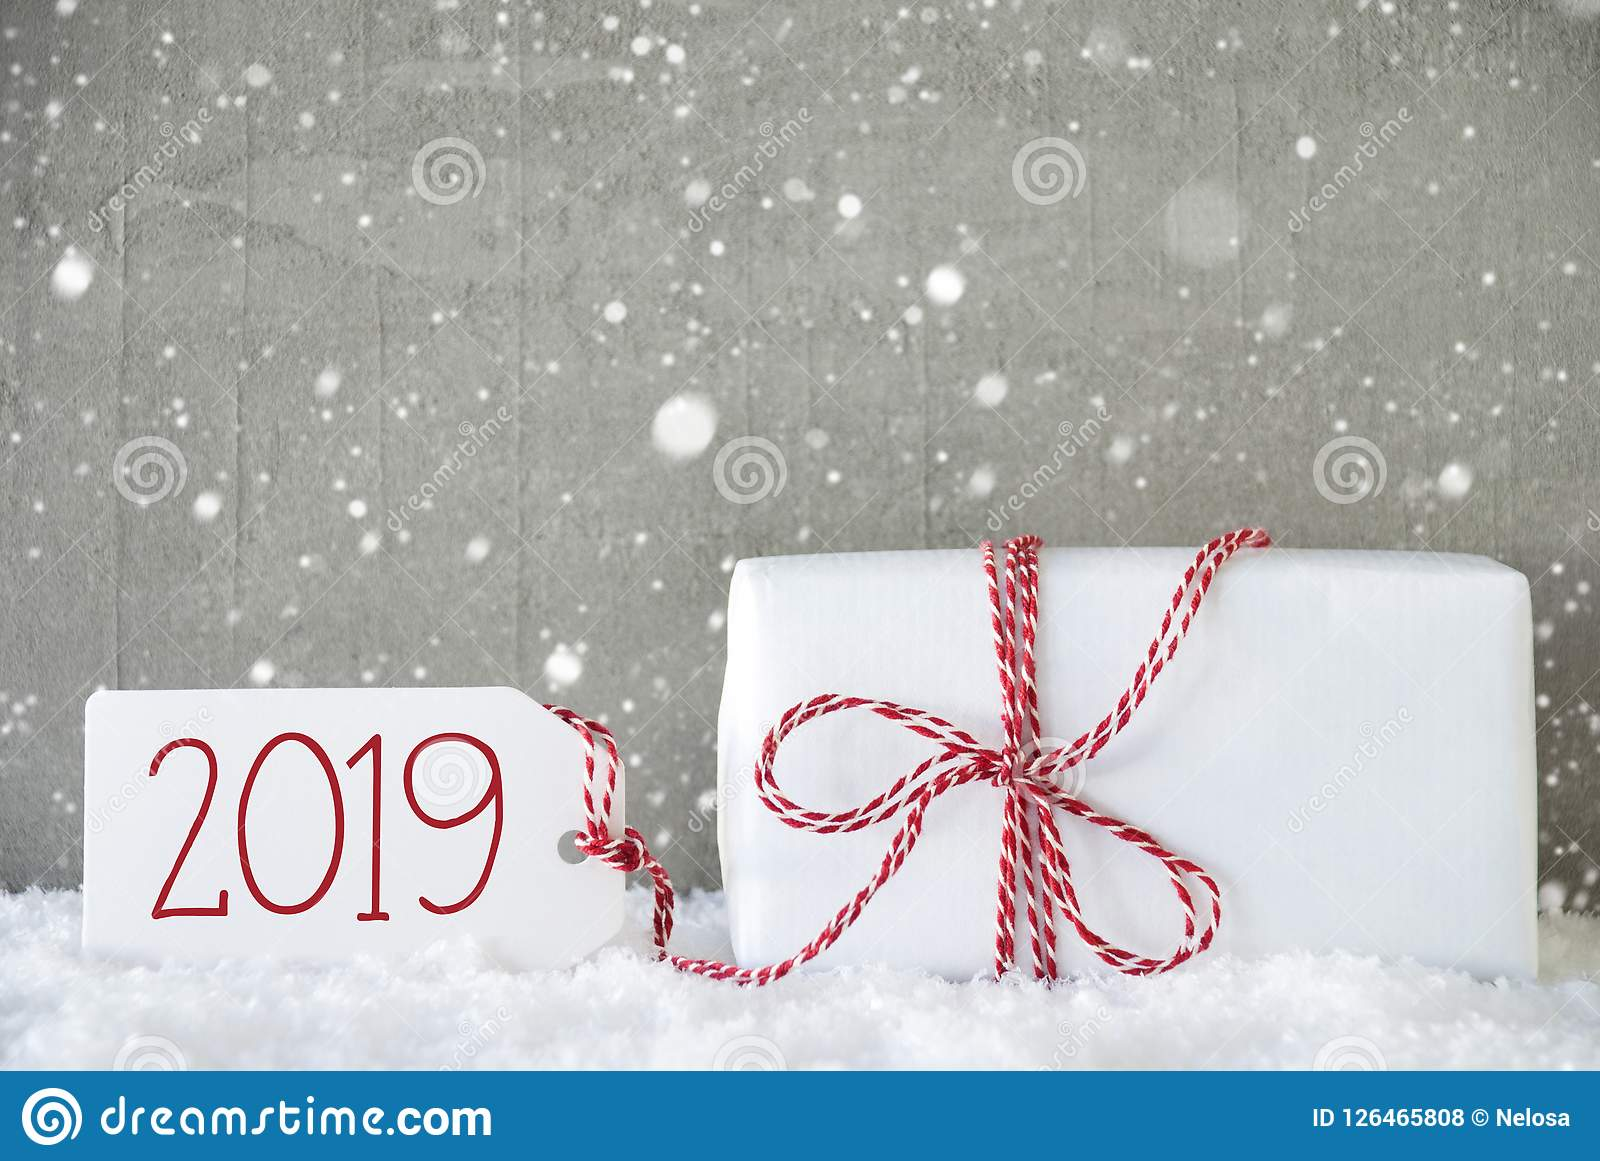 Is It Going To Snow On Christmas 2019 Gift, Cement Background With Snowflakes, Text 2019, Snow Stock